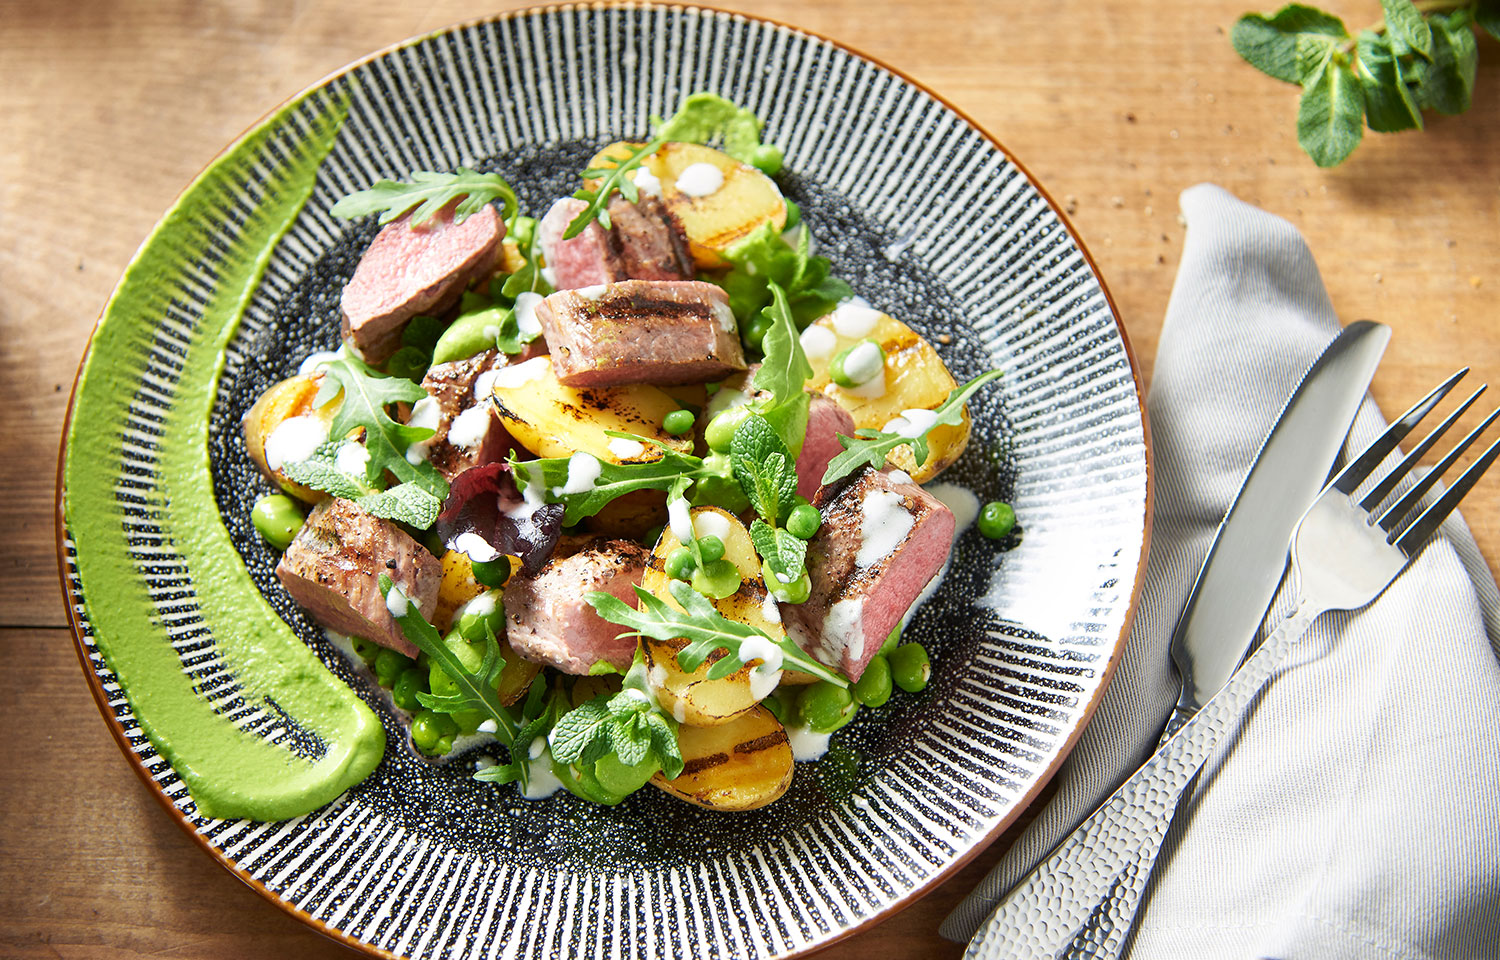 Grilled lamb and potato salad with peas and mint